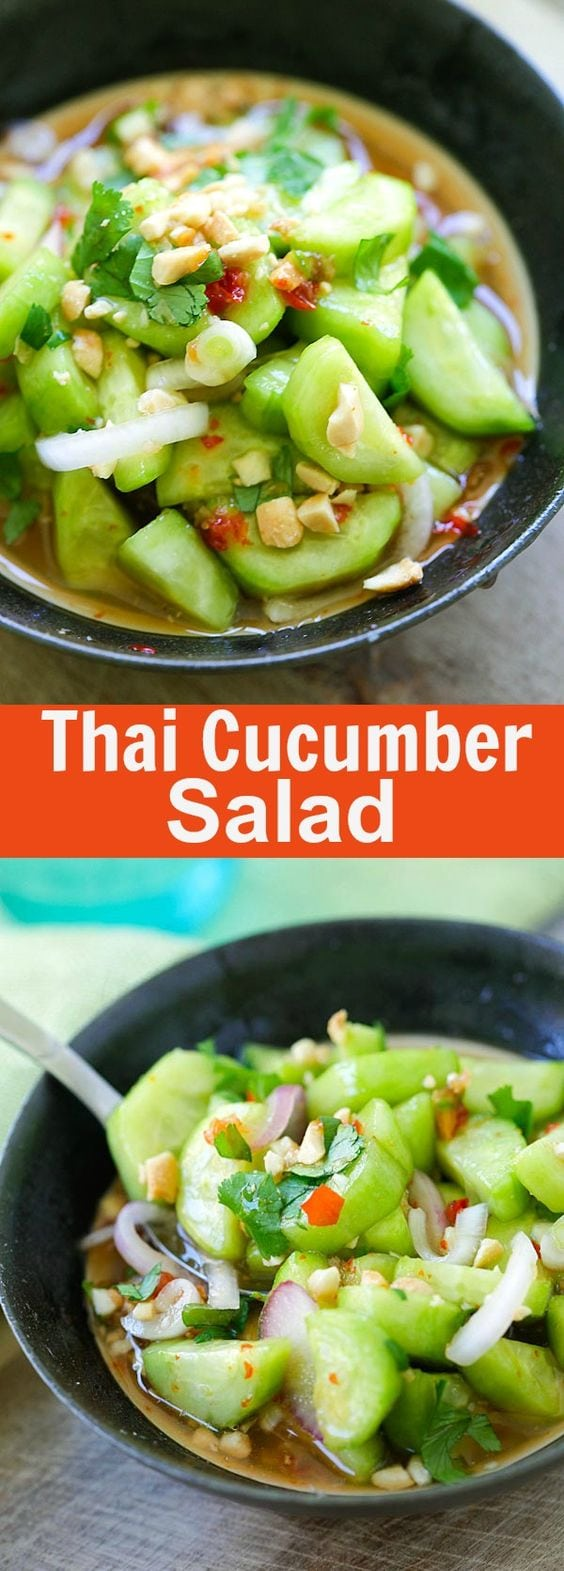 Thai Cucumber Salad - easiest and best homemade Thai cucumber salad recipe that is better than your favorite Thai restaurants, guaranteed | rasamalaysia.com